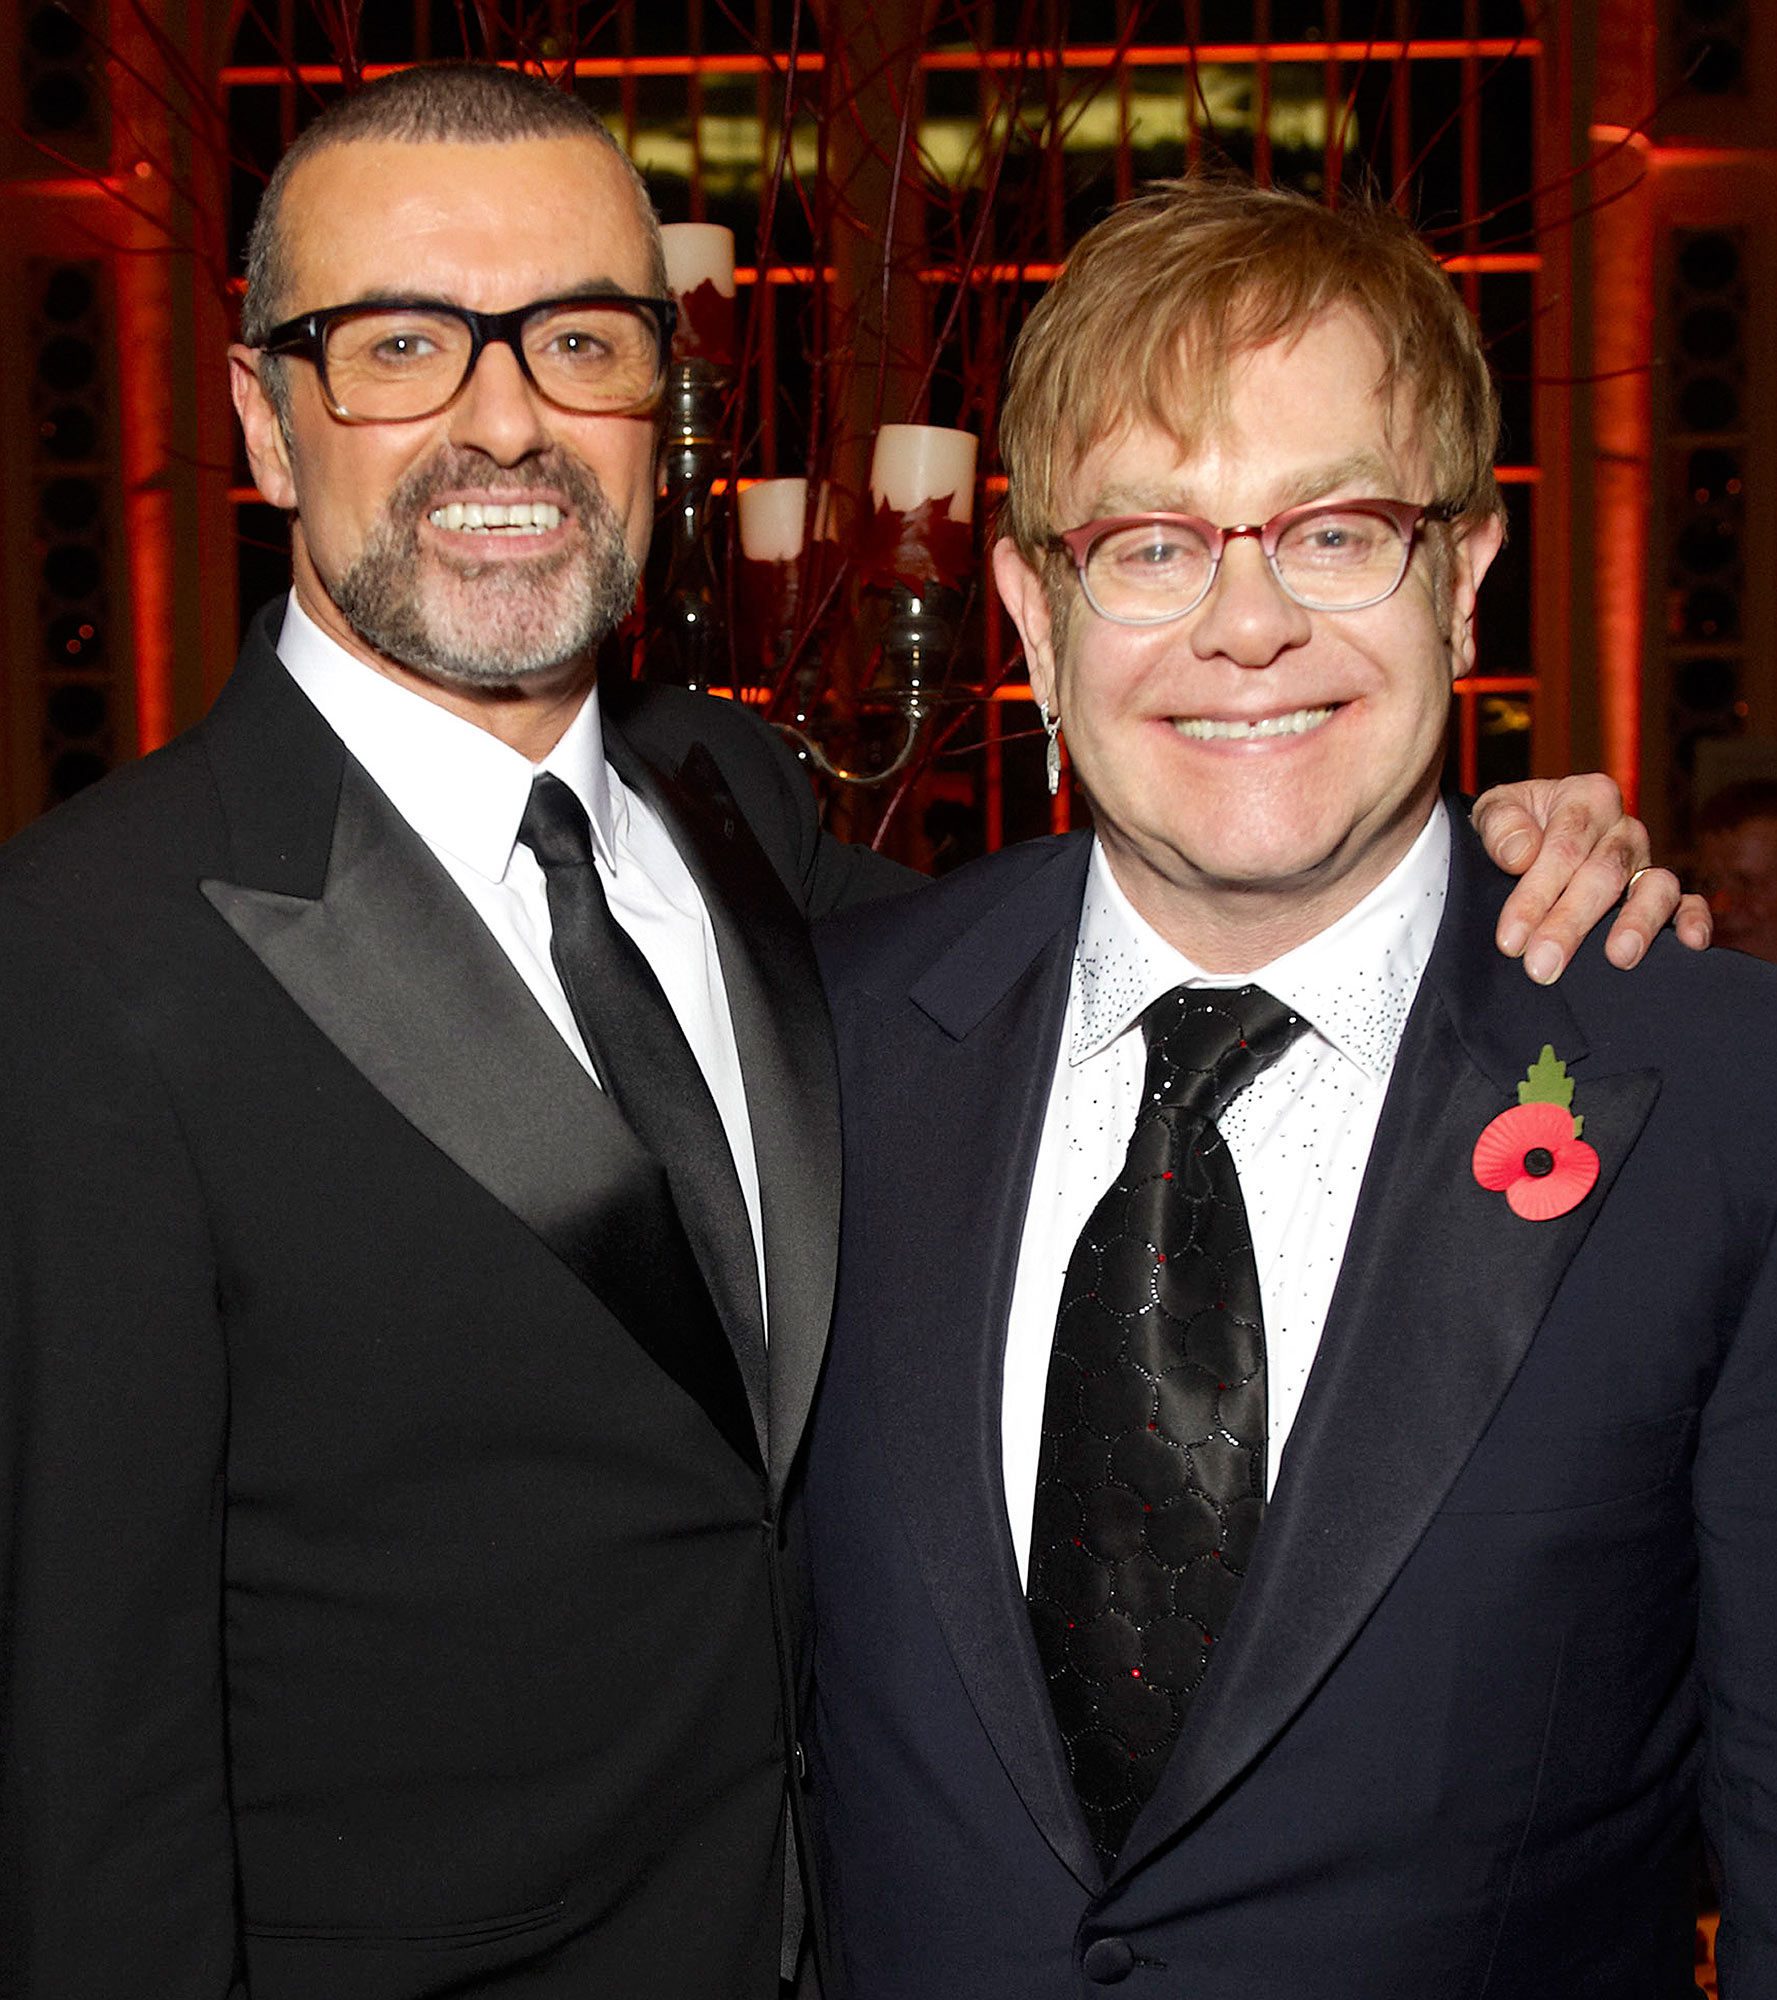 George Michael and Elton John Charity Performance At The Royal Opera House